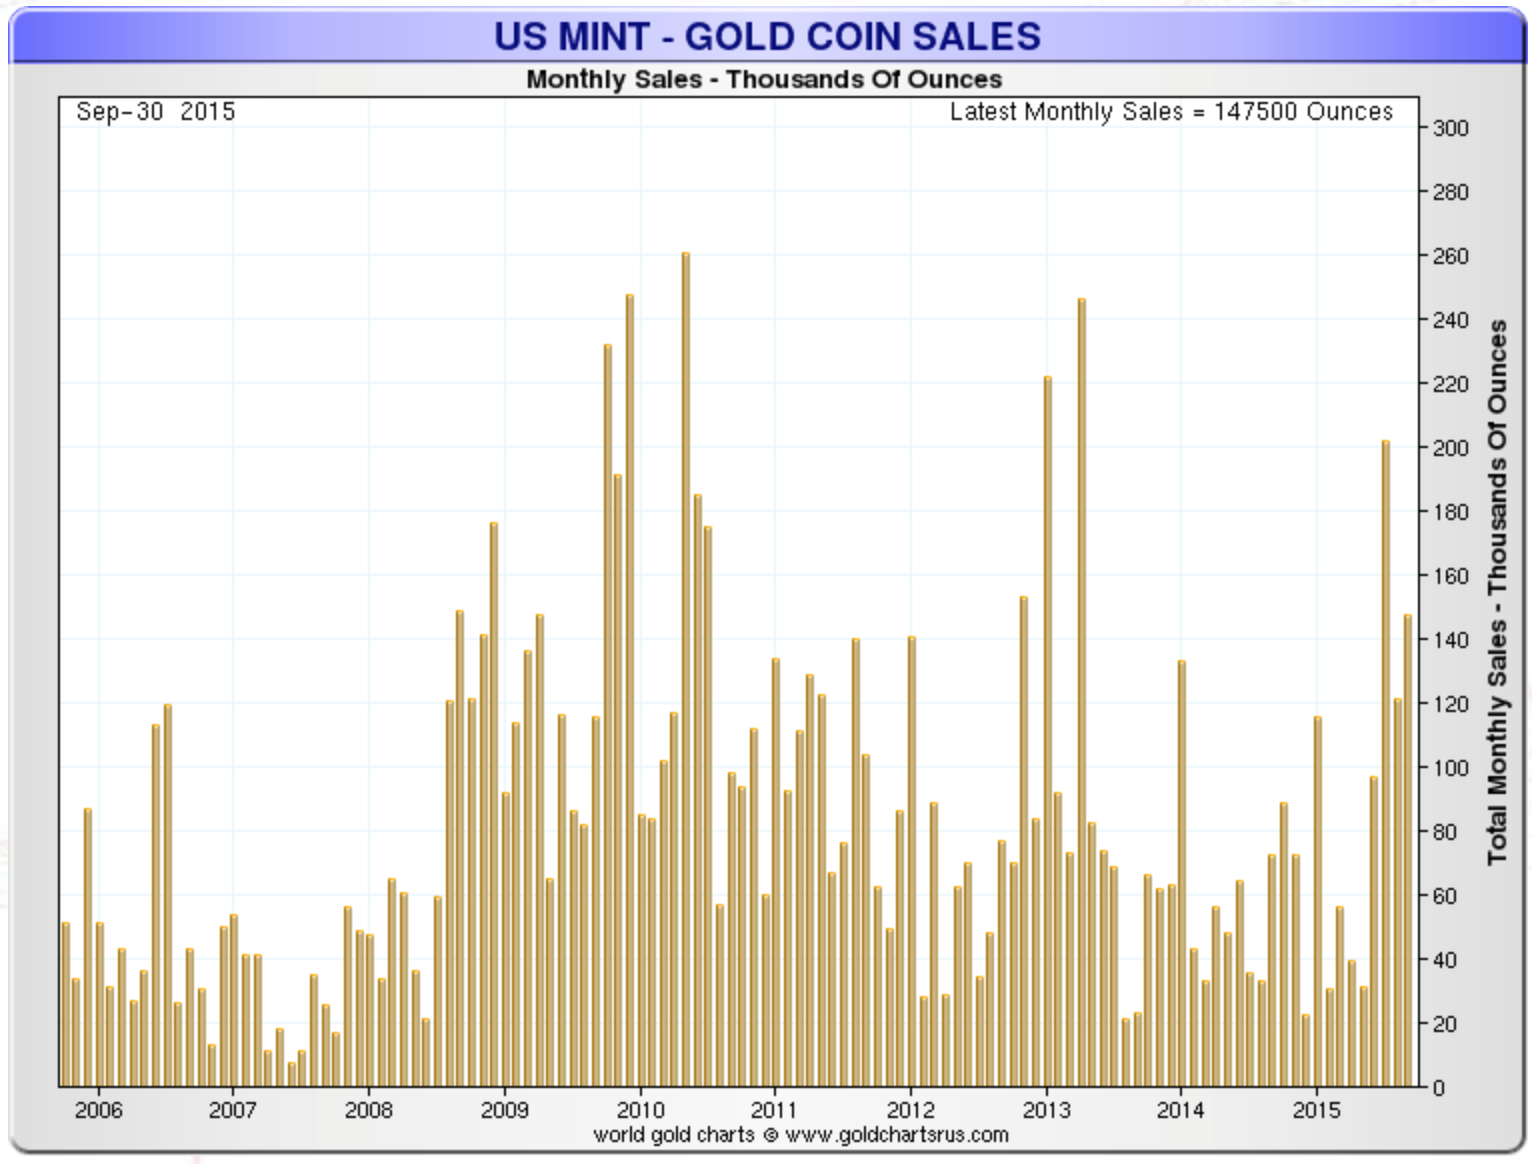 US Gold Coin Sales